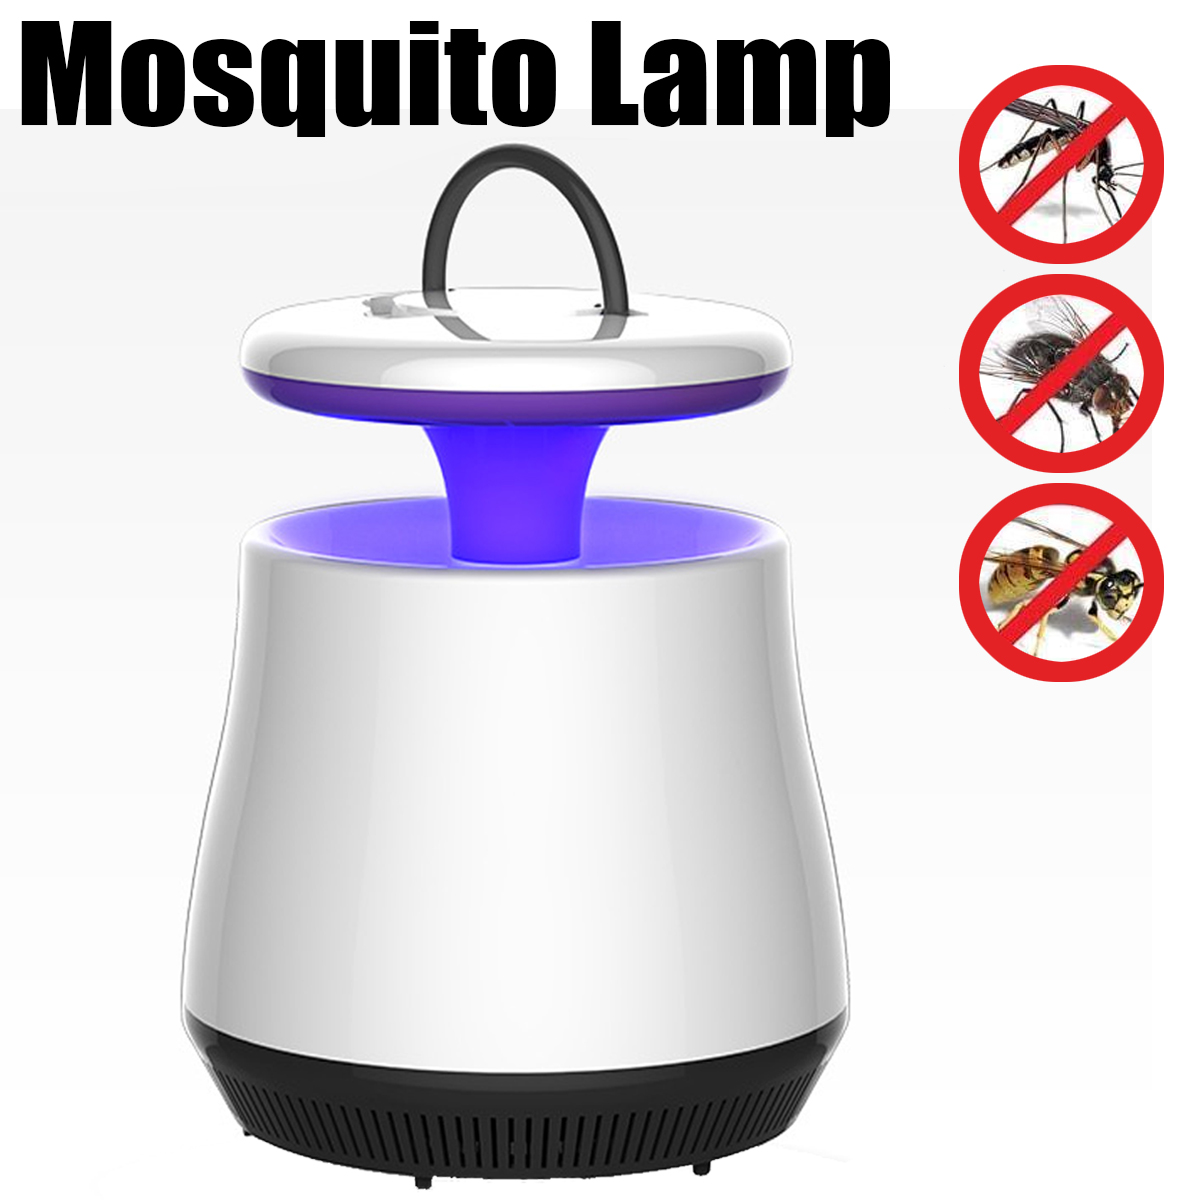 LED Bug Zapper Trap Catcher USB Mosquito Anti Insect Killer Repellents Light Bulb Daylight Lamp Pest Control Tools Supplies